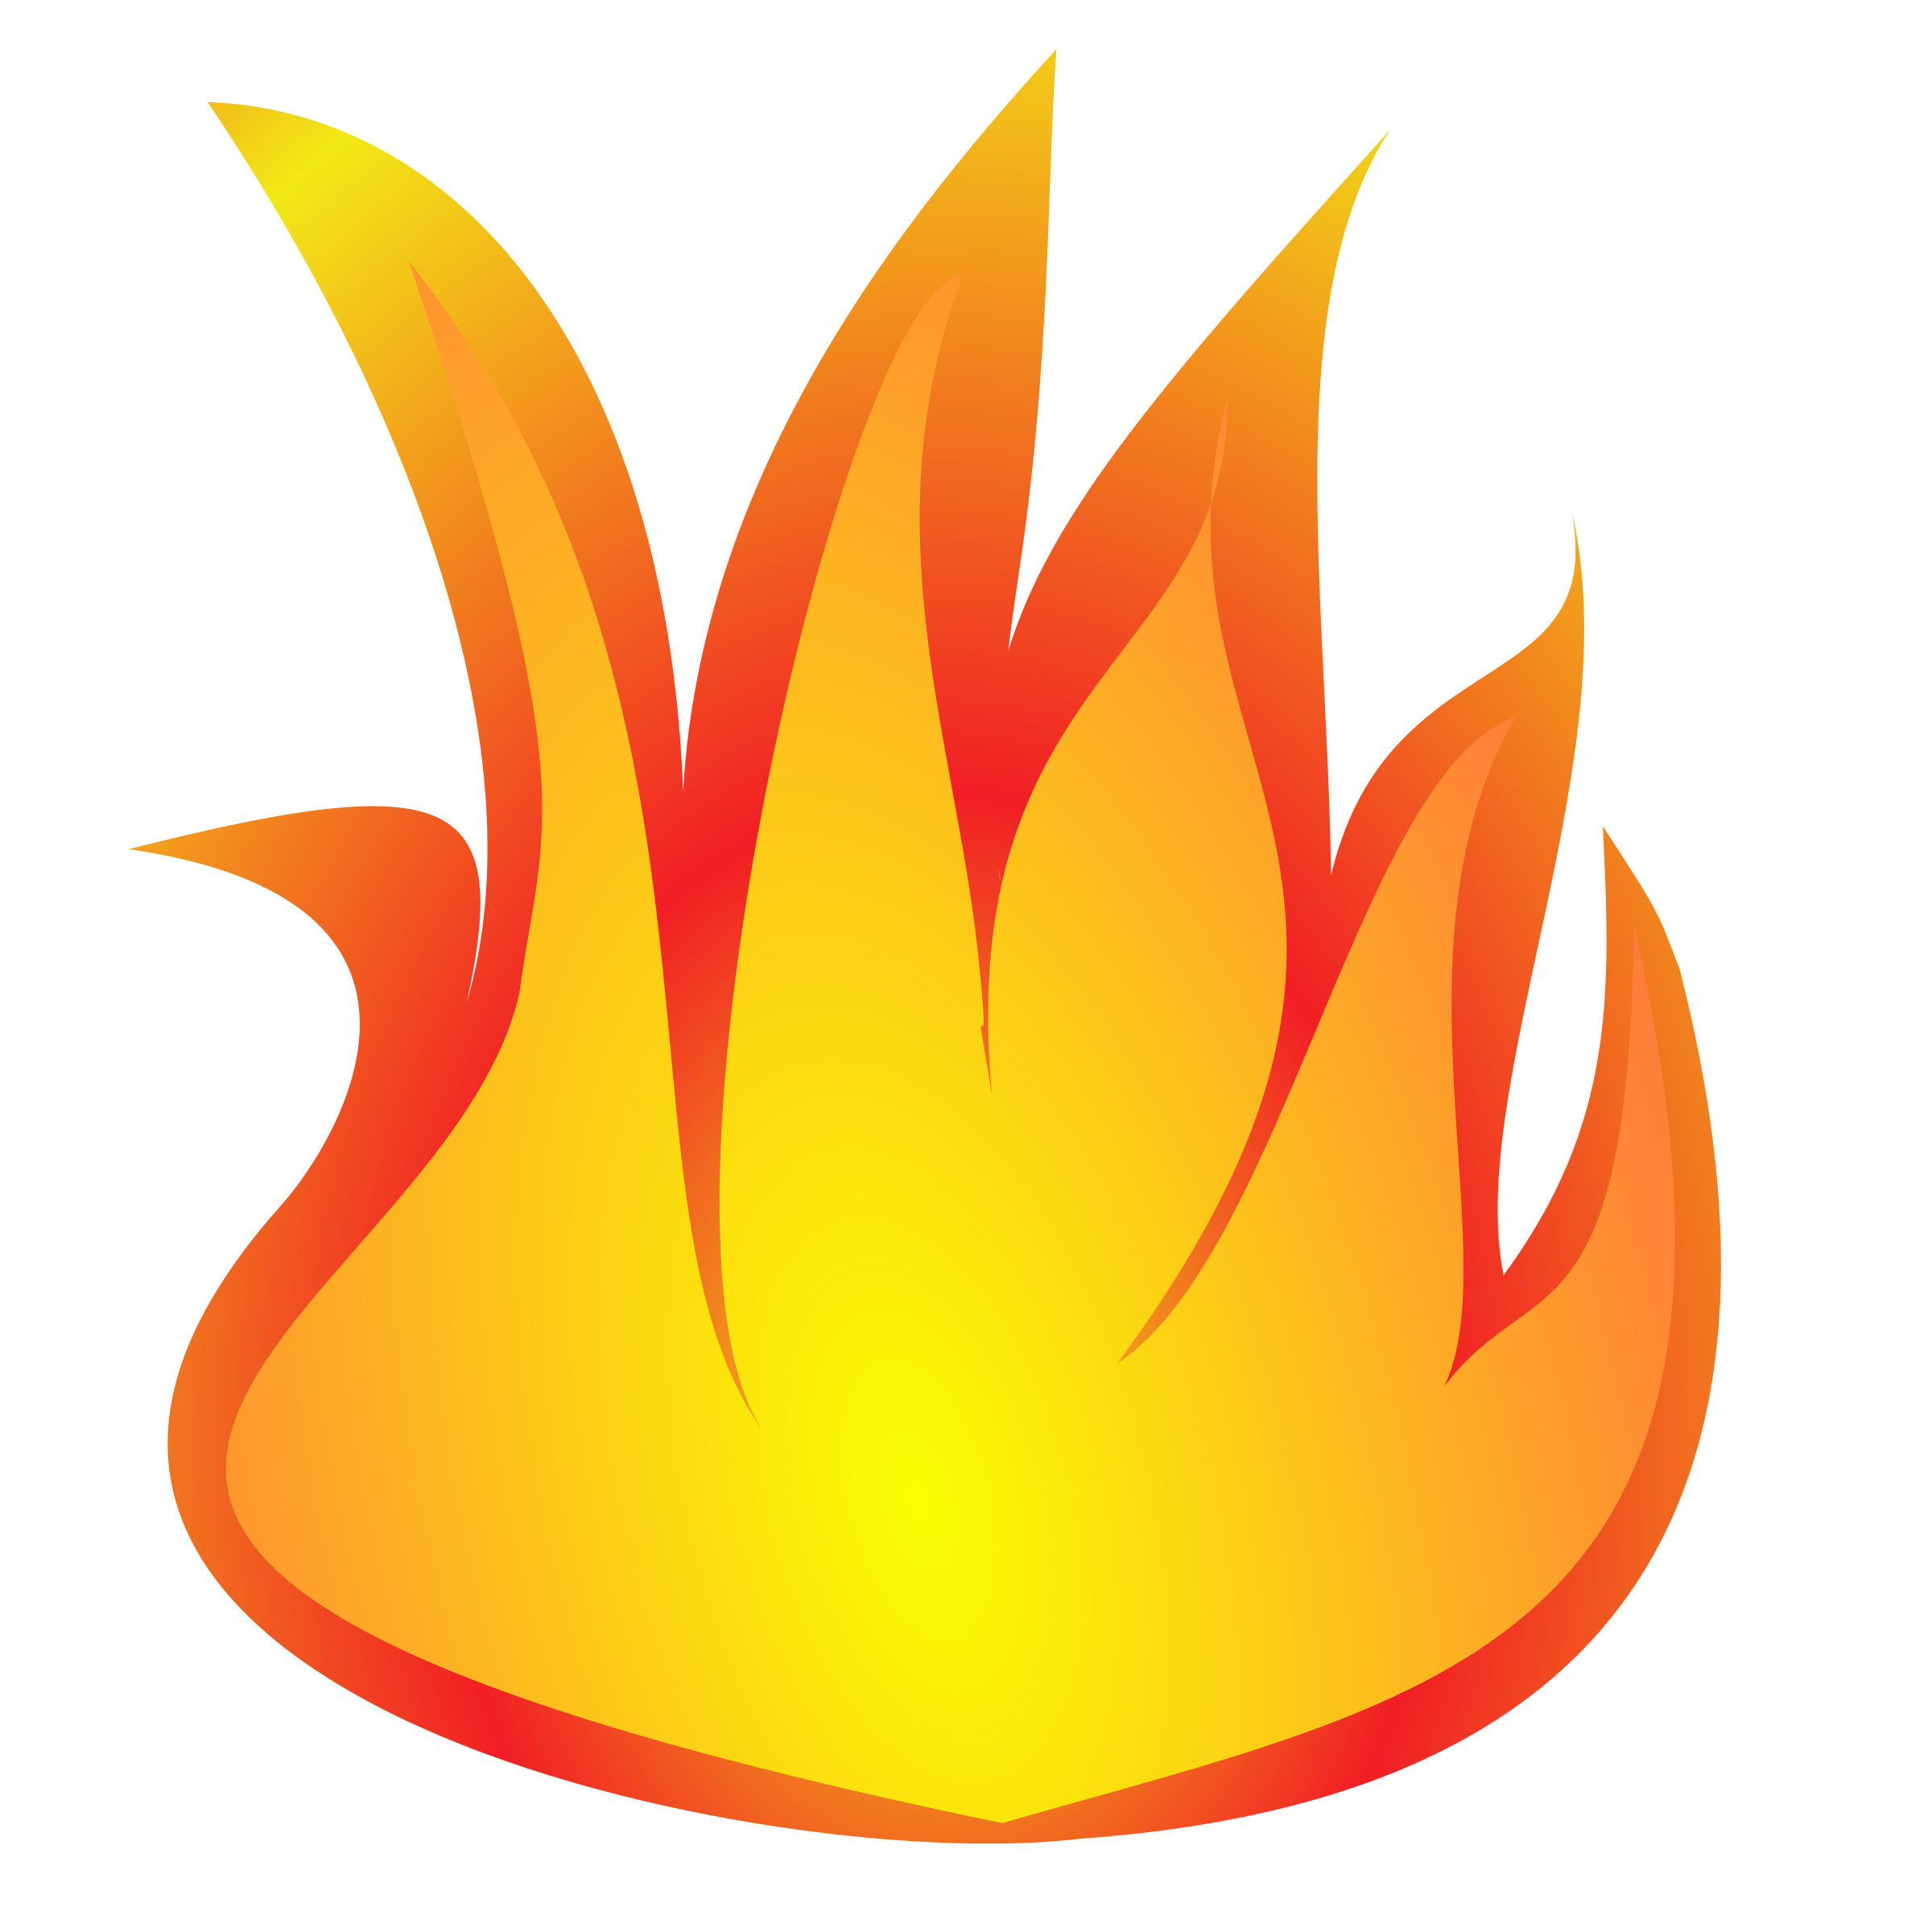 Fireplace Fire Clipart Free Clipart Imag-Fireplace fire clipart free clipart image-12